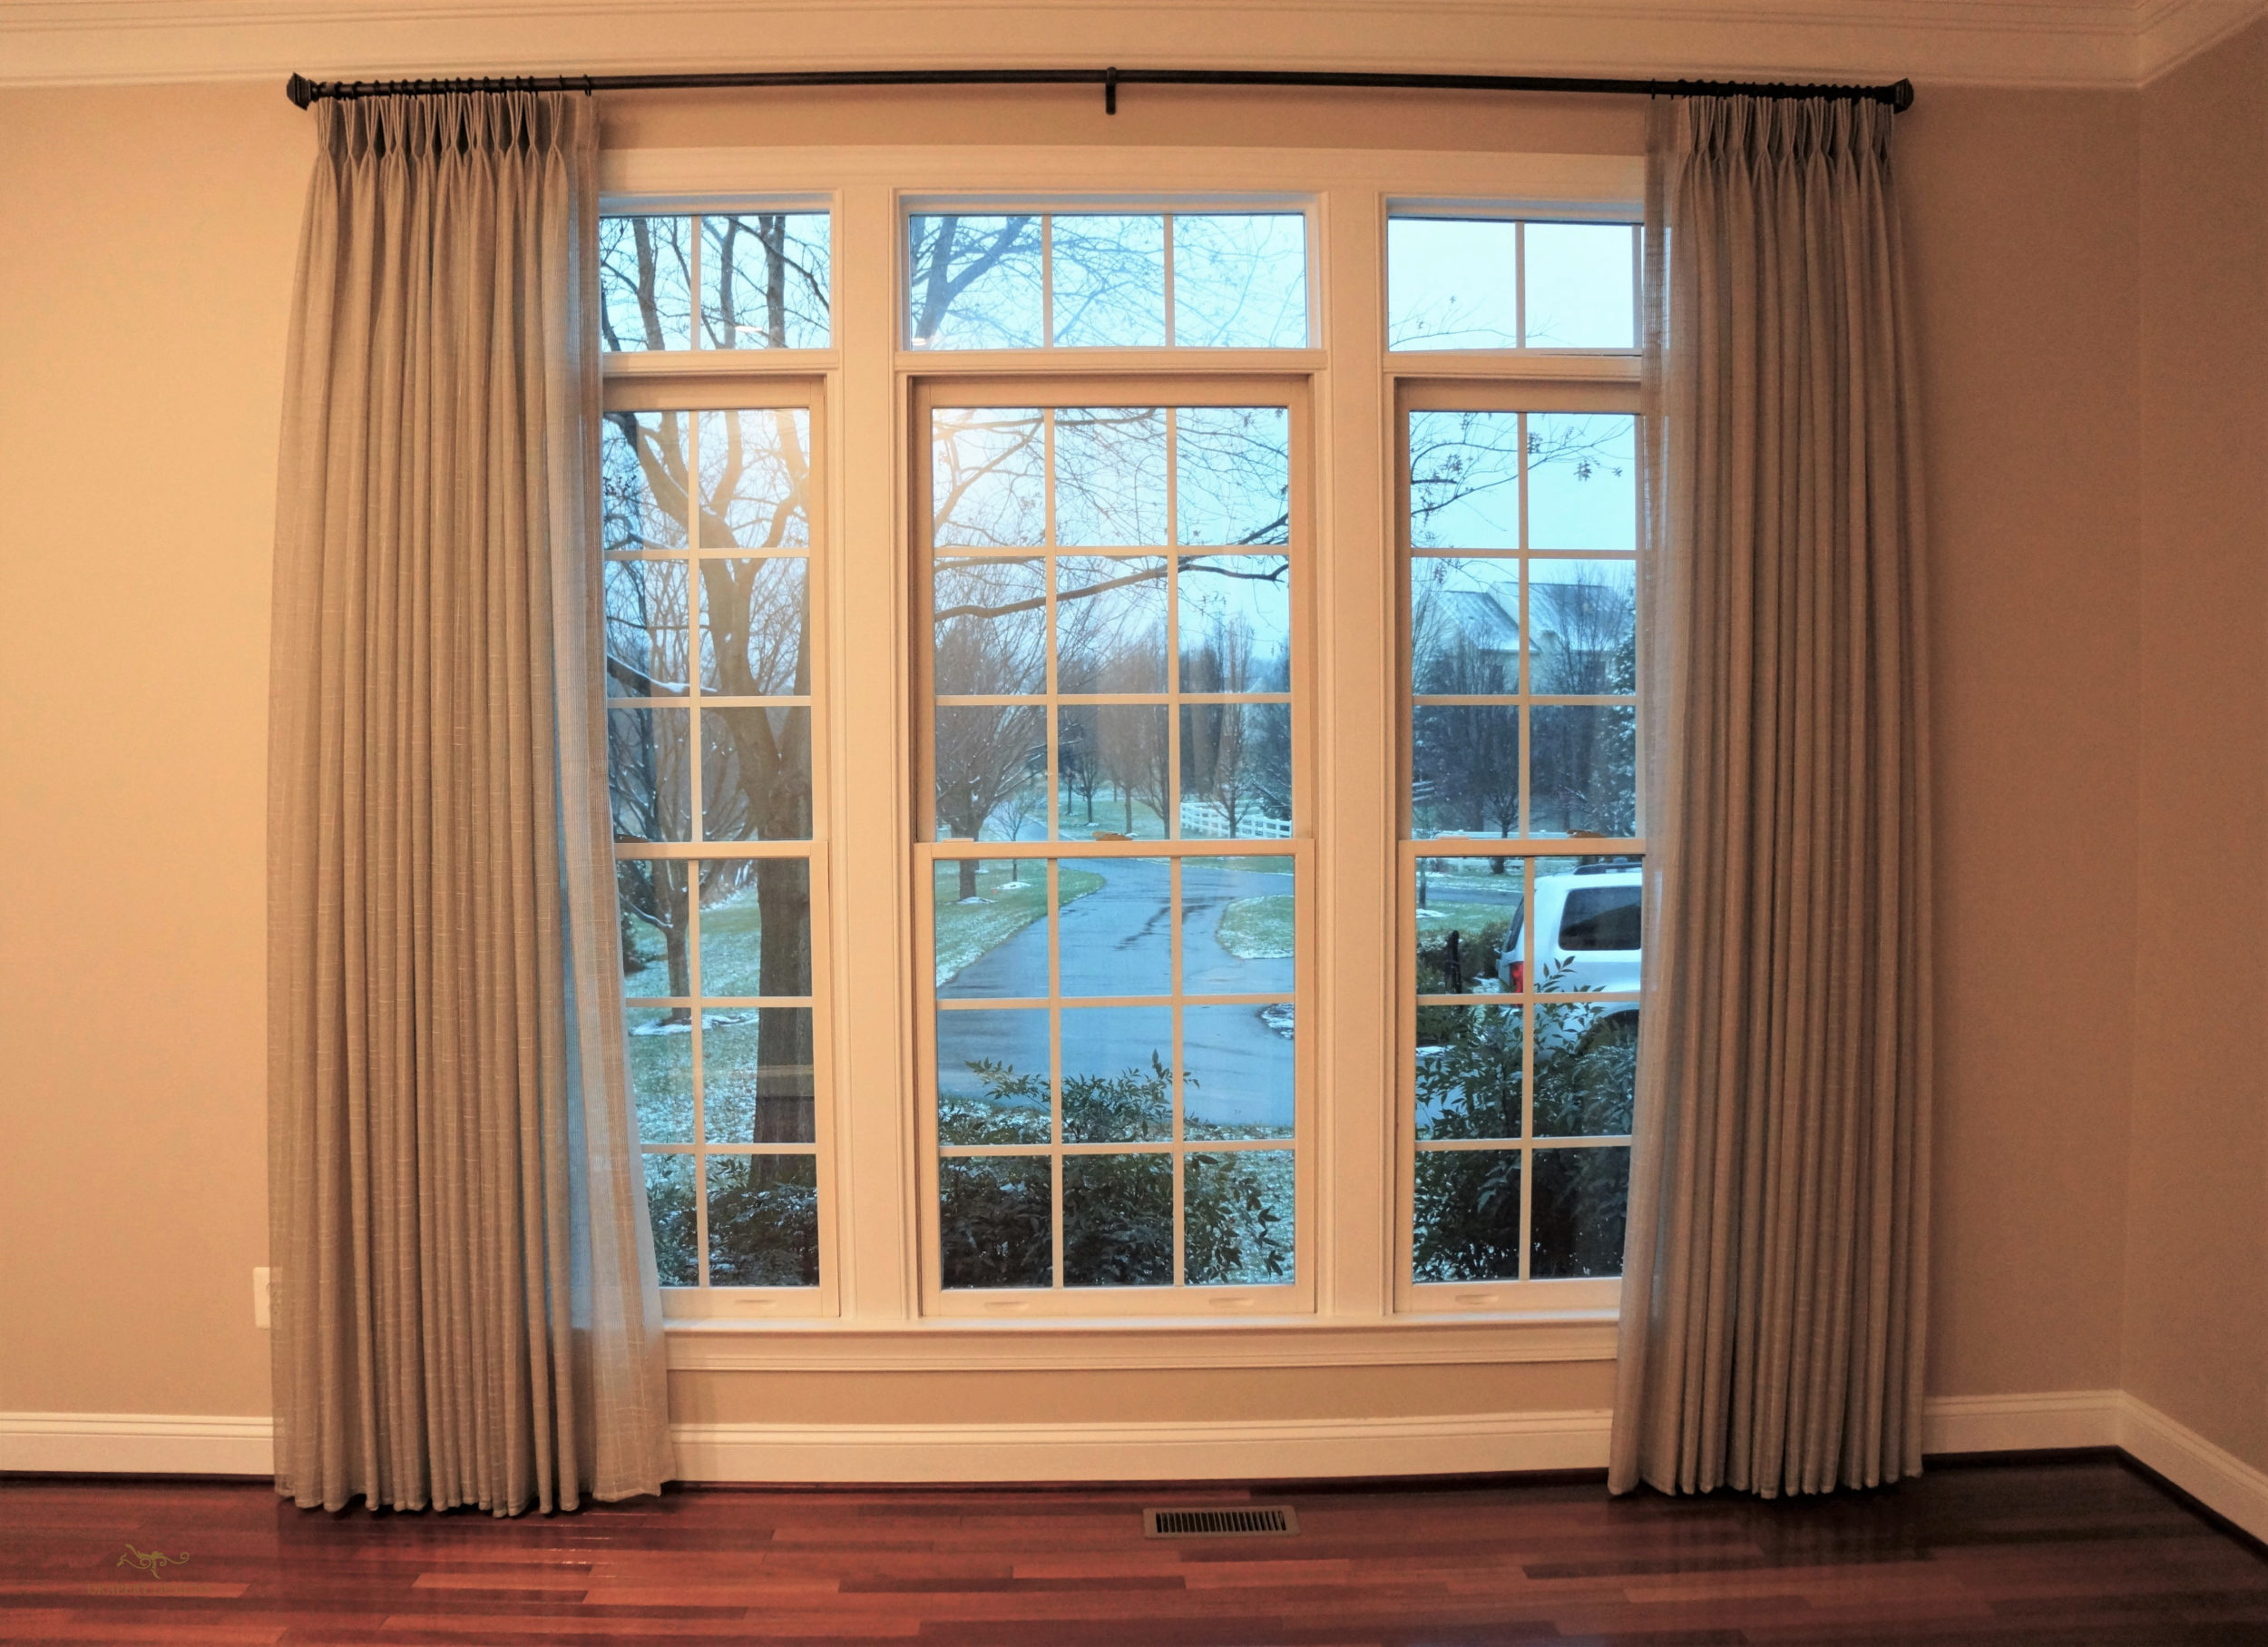 Drapery Designs Uncategorized 202005 Baywindow02